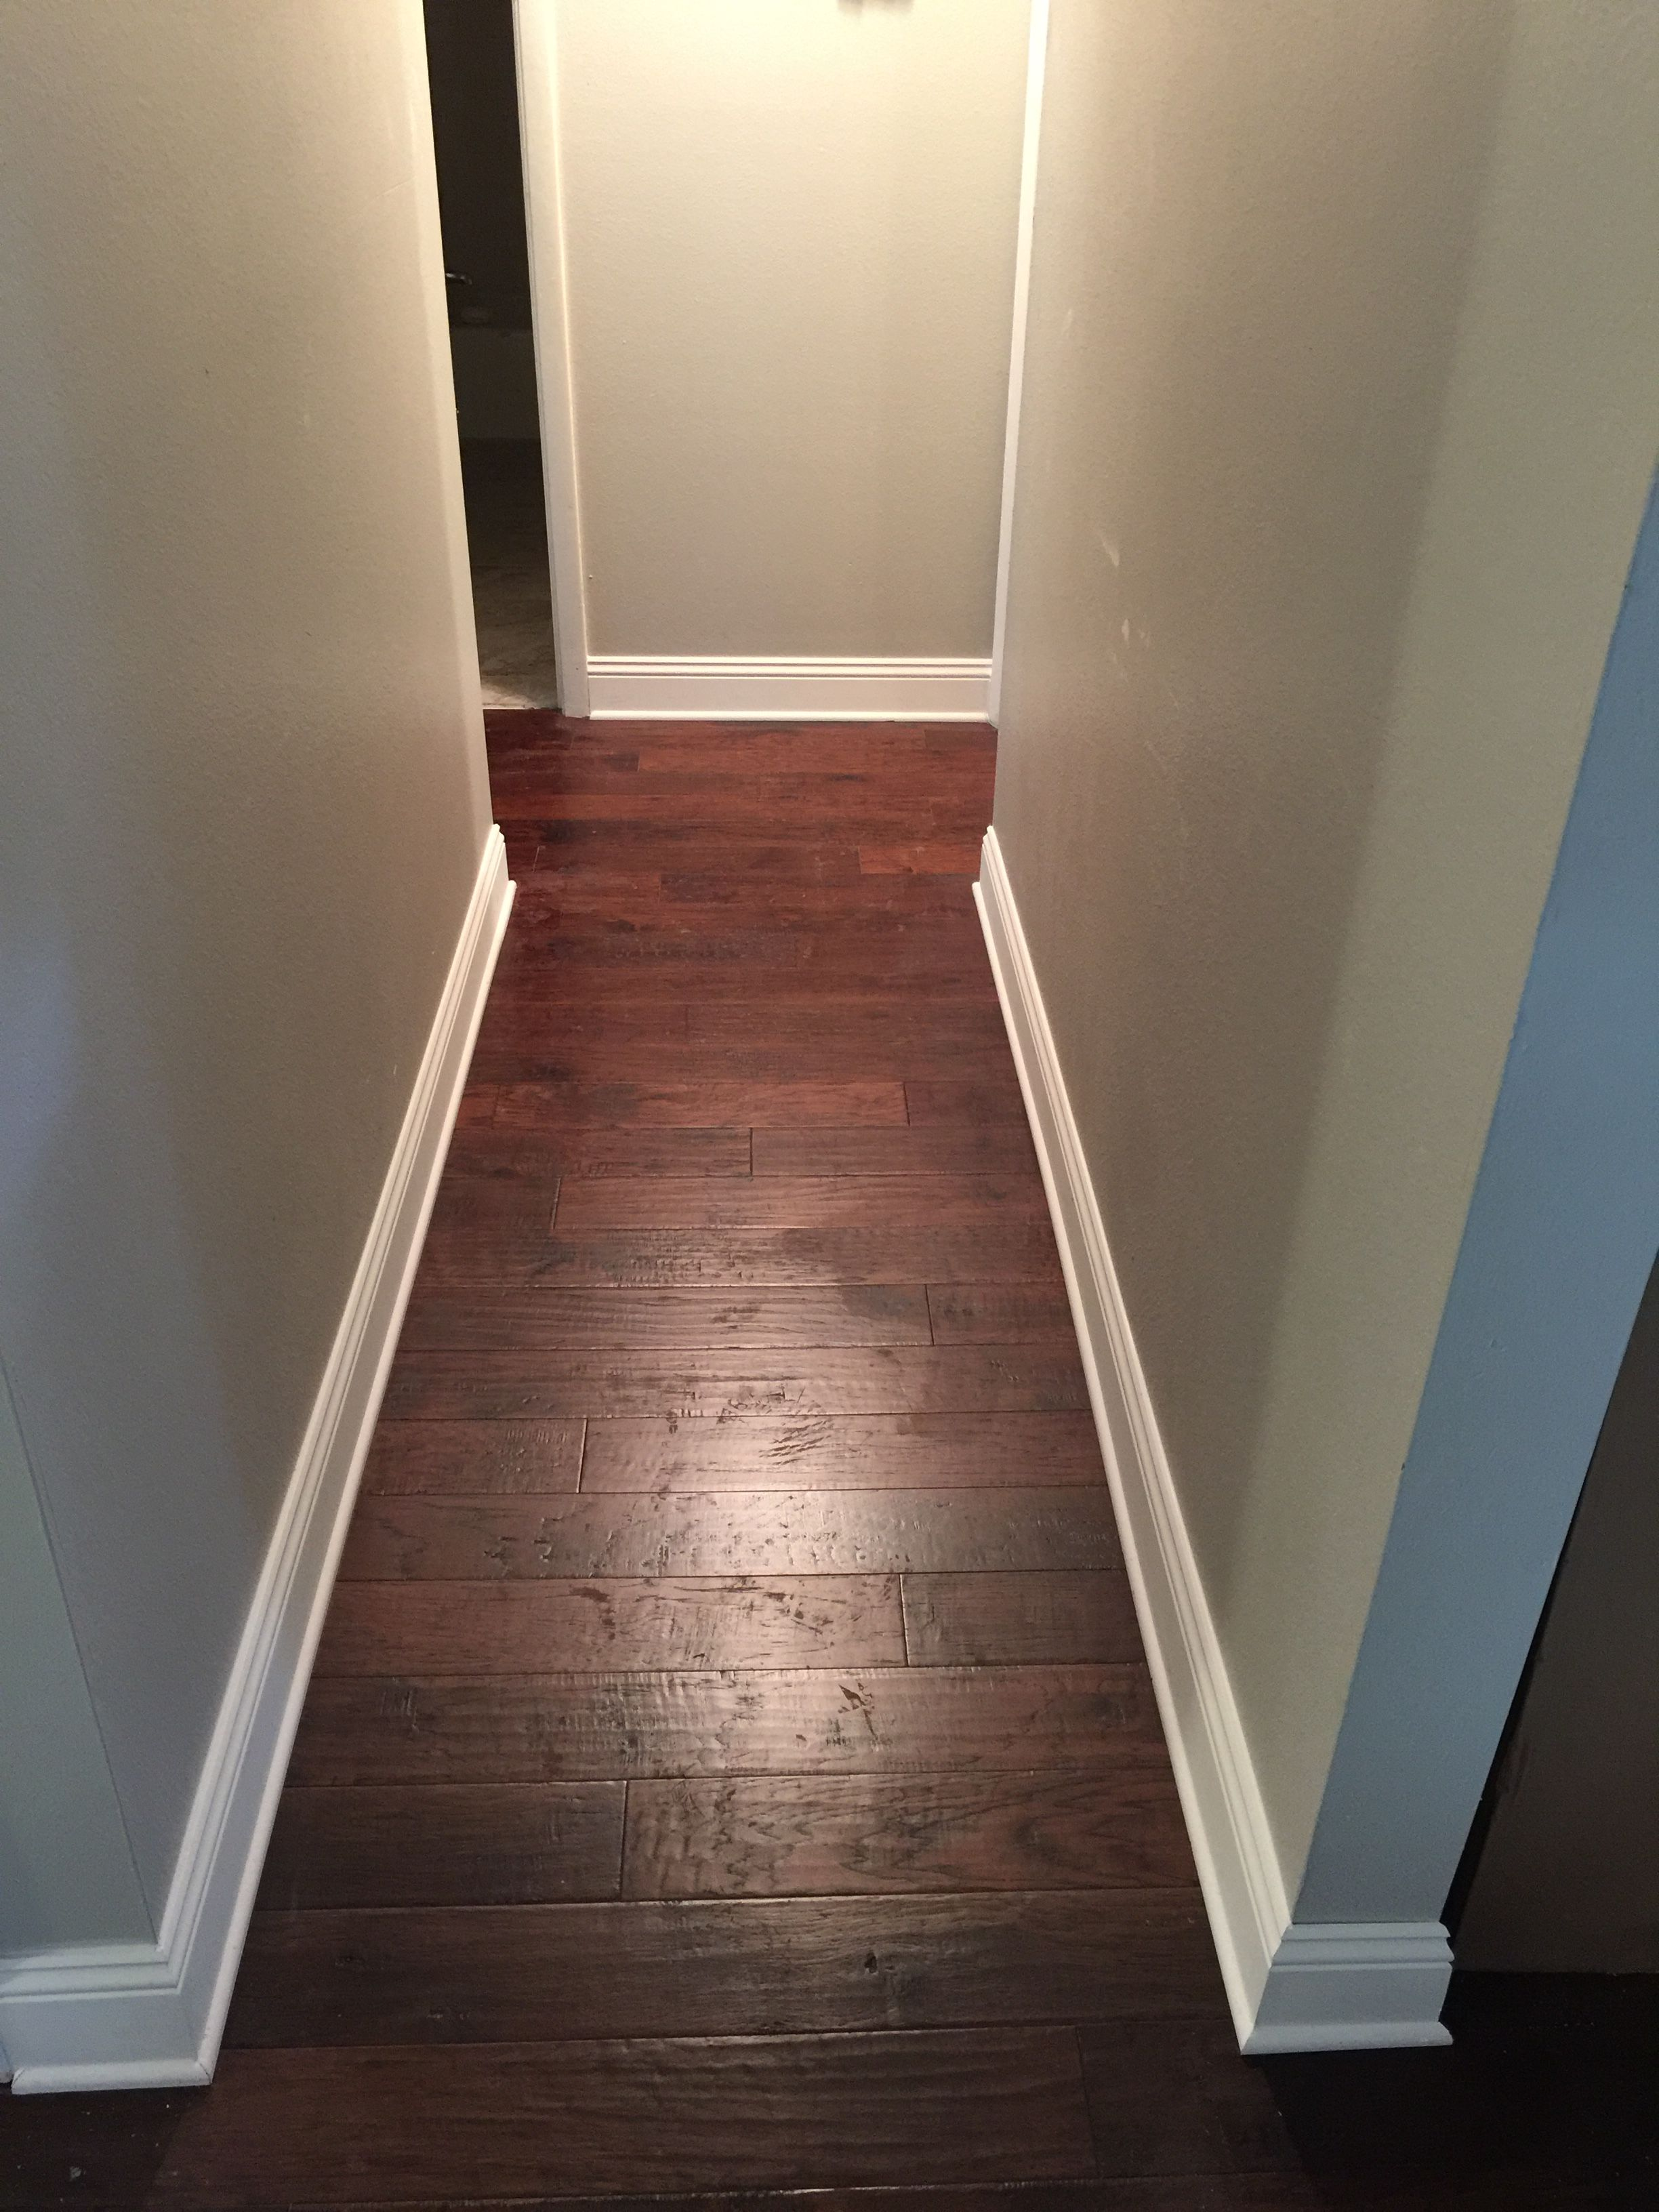 5 Inch Baseboards Are So In Right Now Remodeled This Hallway With Dark Hardwood Floors Condo Kitchen Remodel Kitchen Remodel Layout Simple Kitchen Remodel